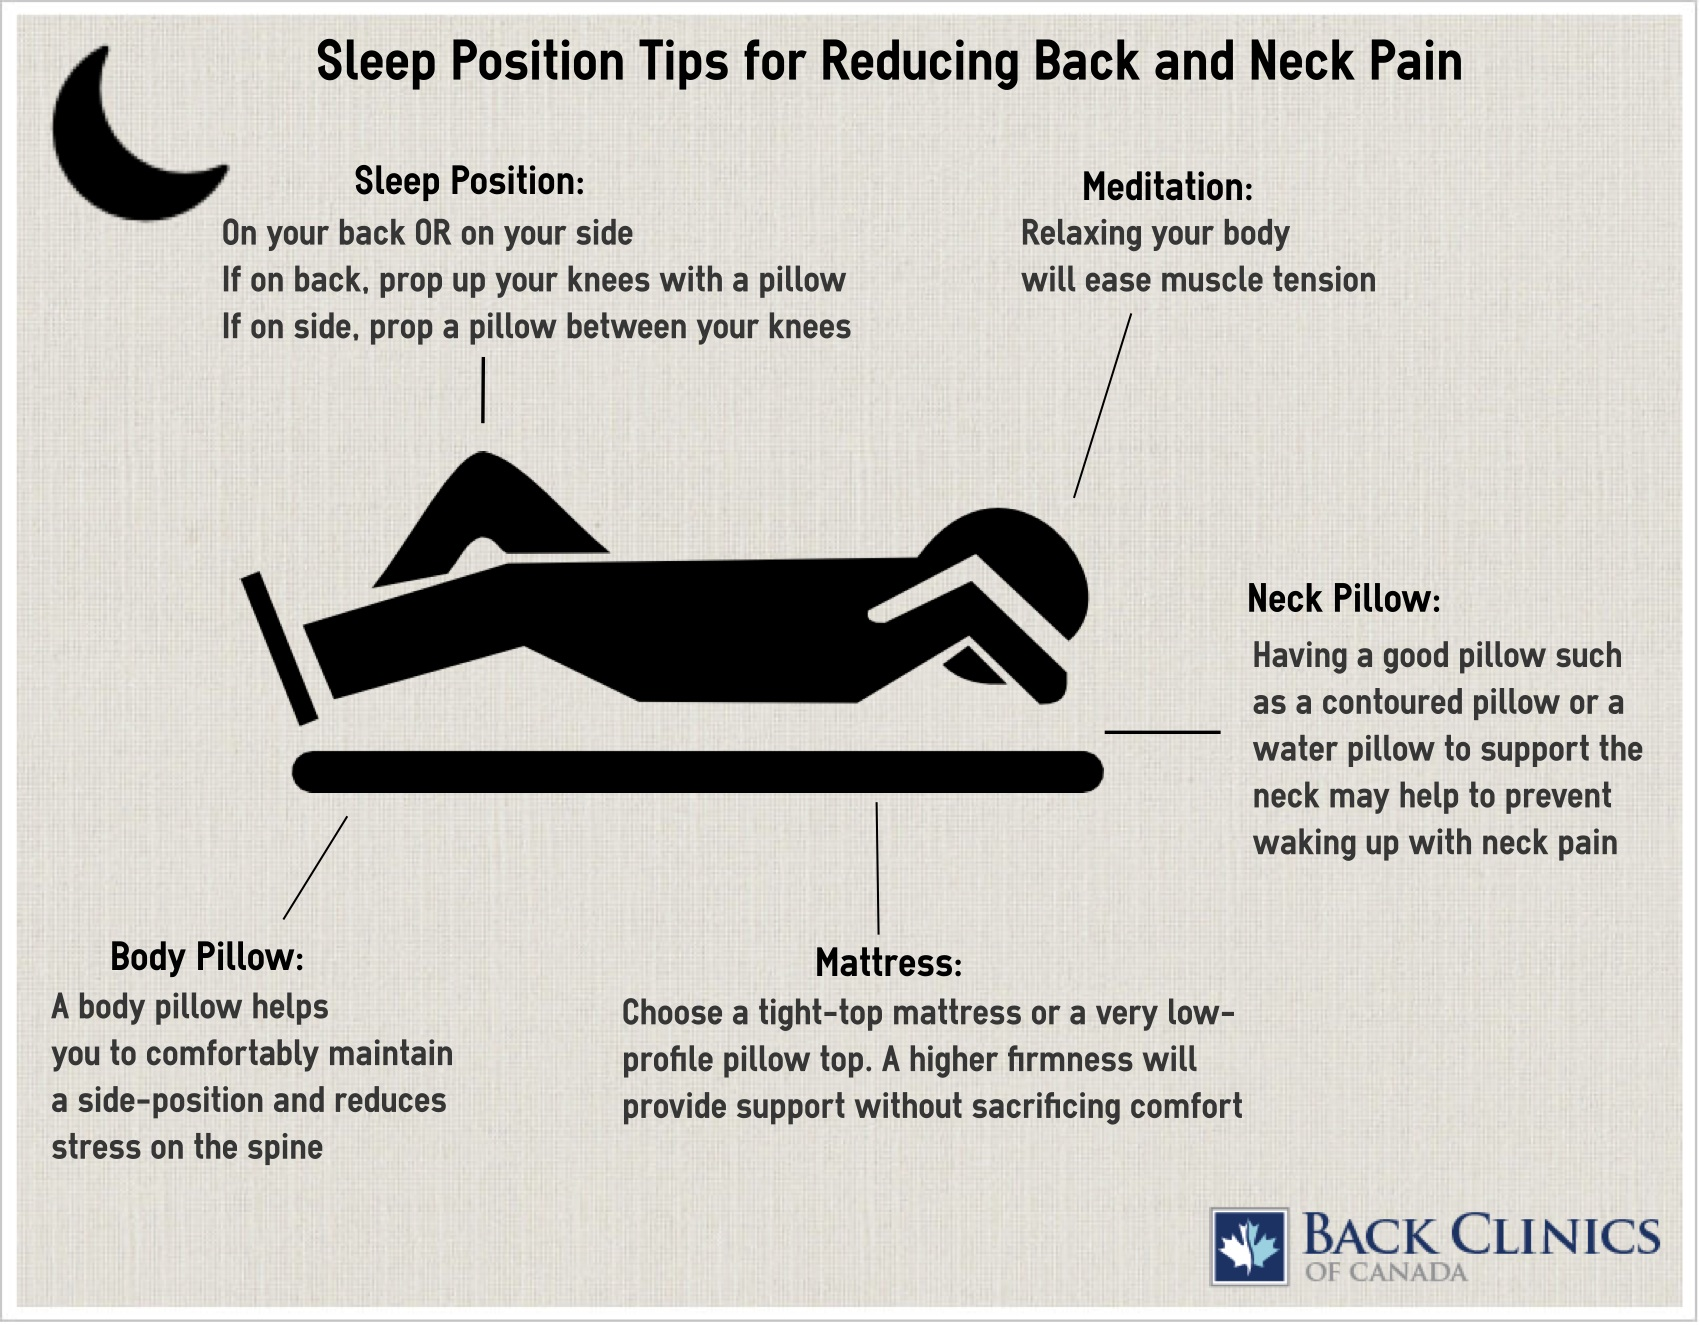 sleep positions for reducing back and neck pain - back clinics of